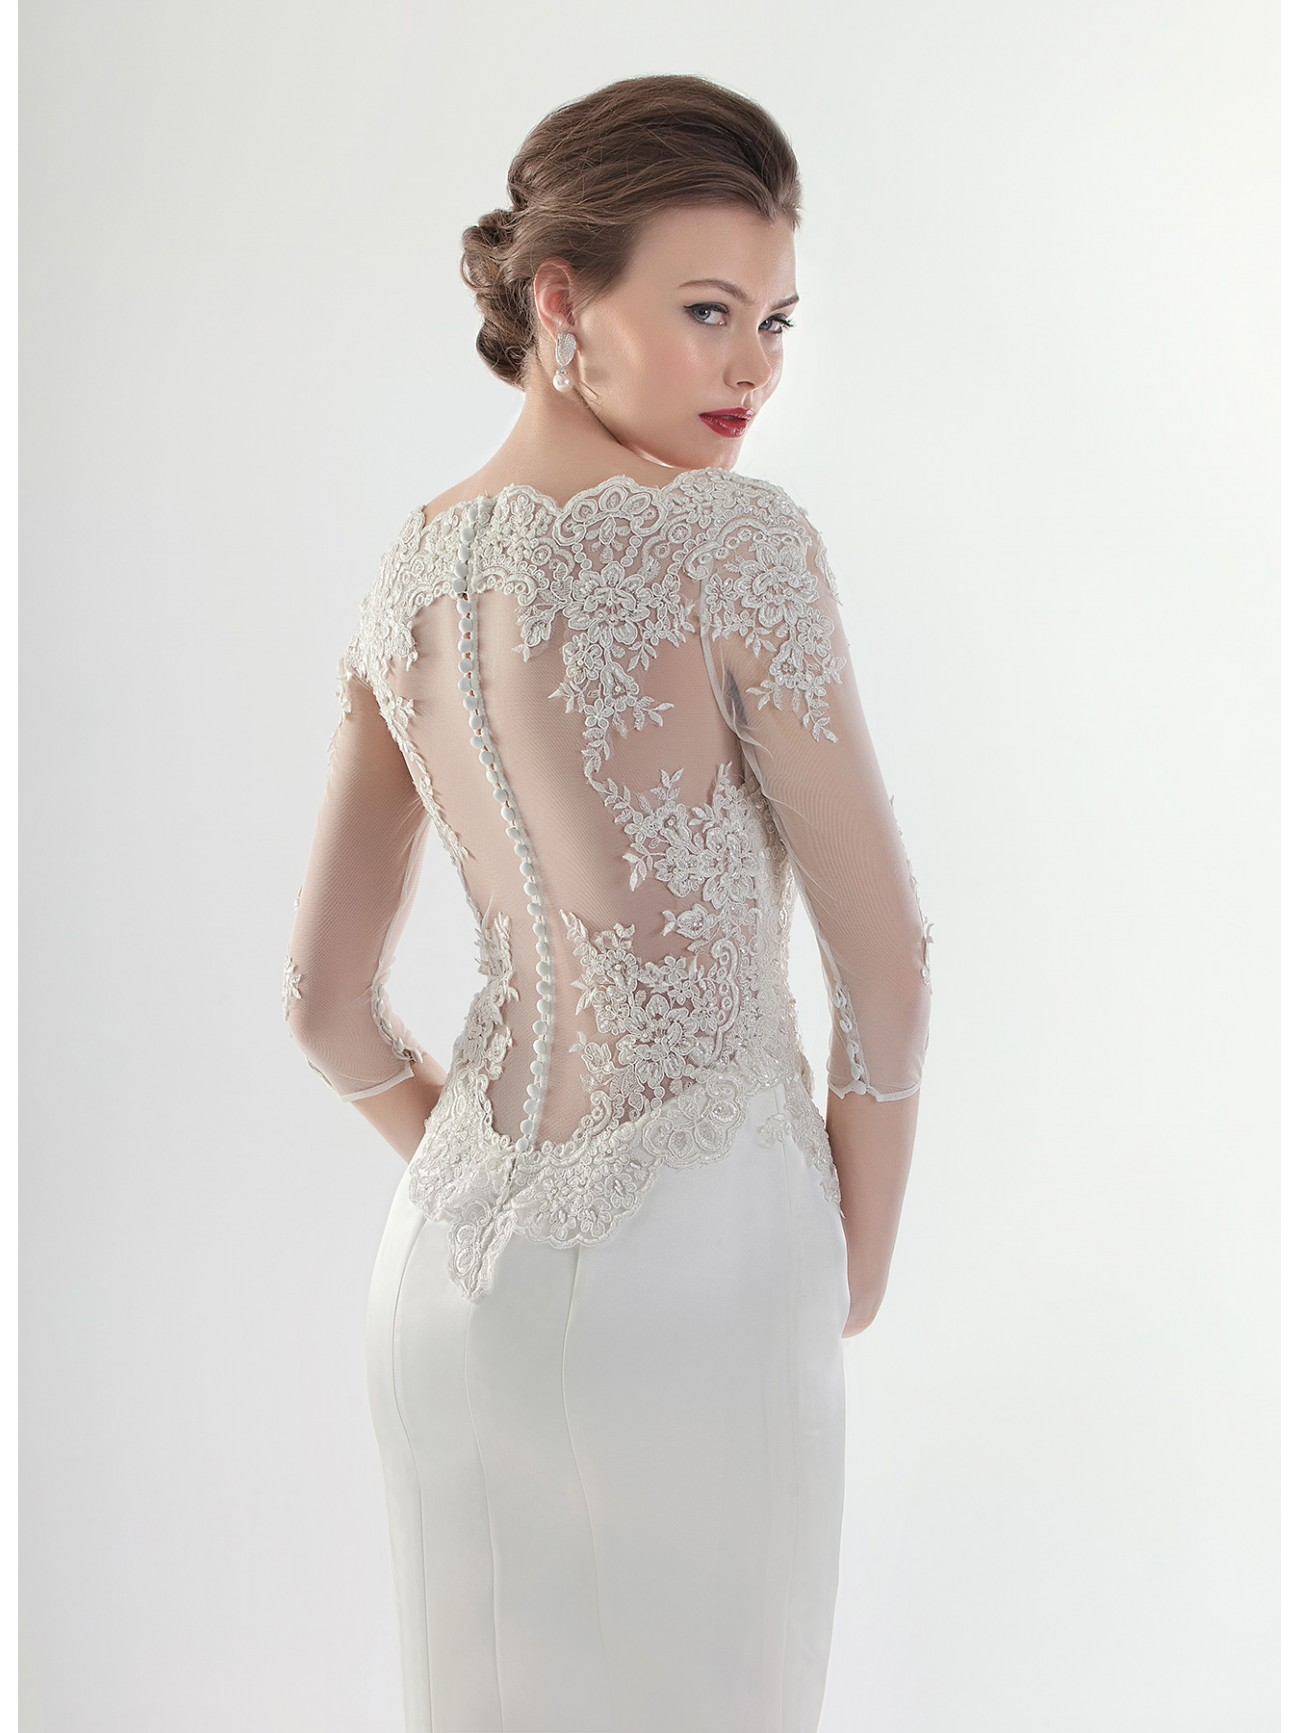 Bridal 2015 Collection by Pepe Botella: White and Pure Apple